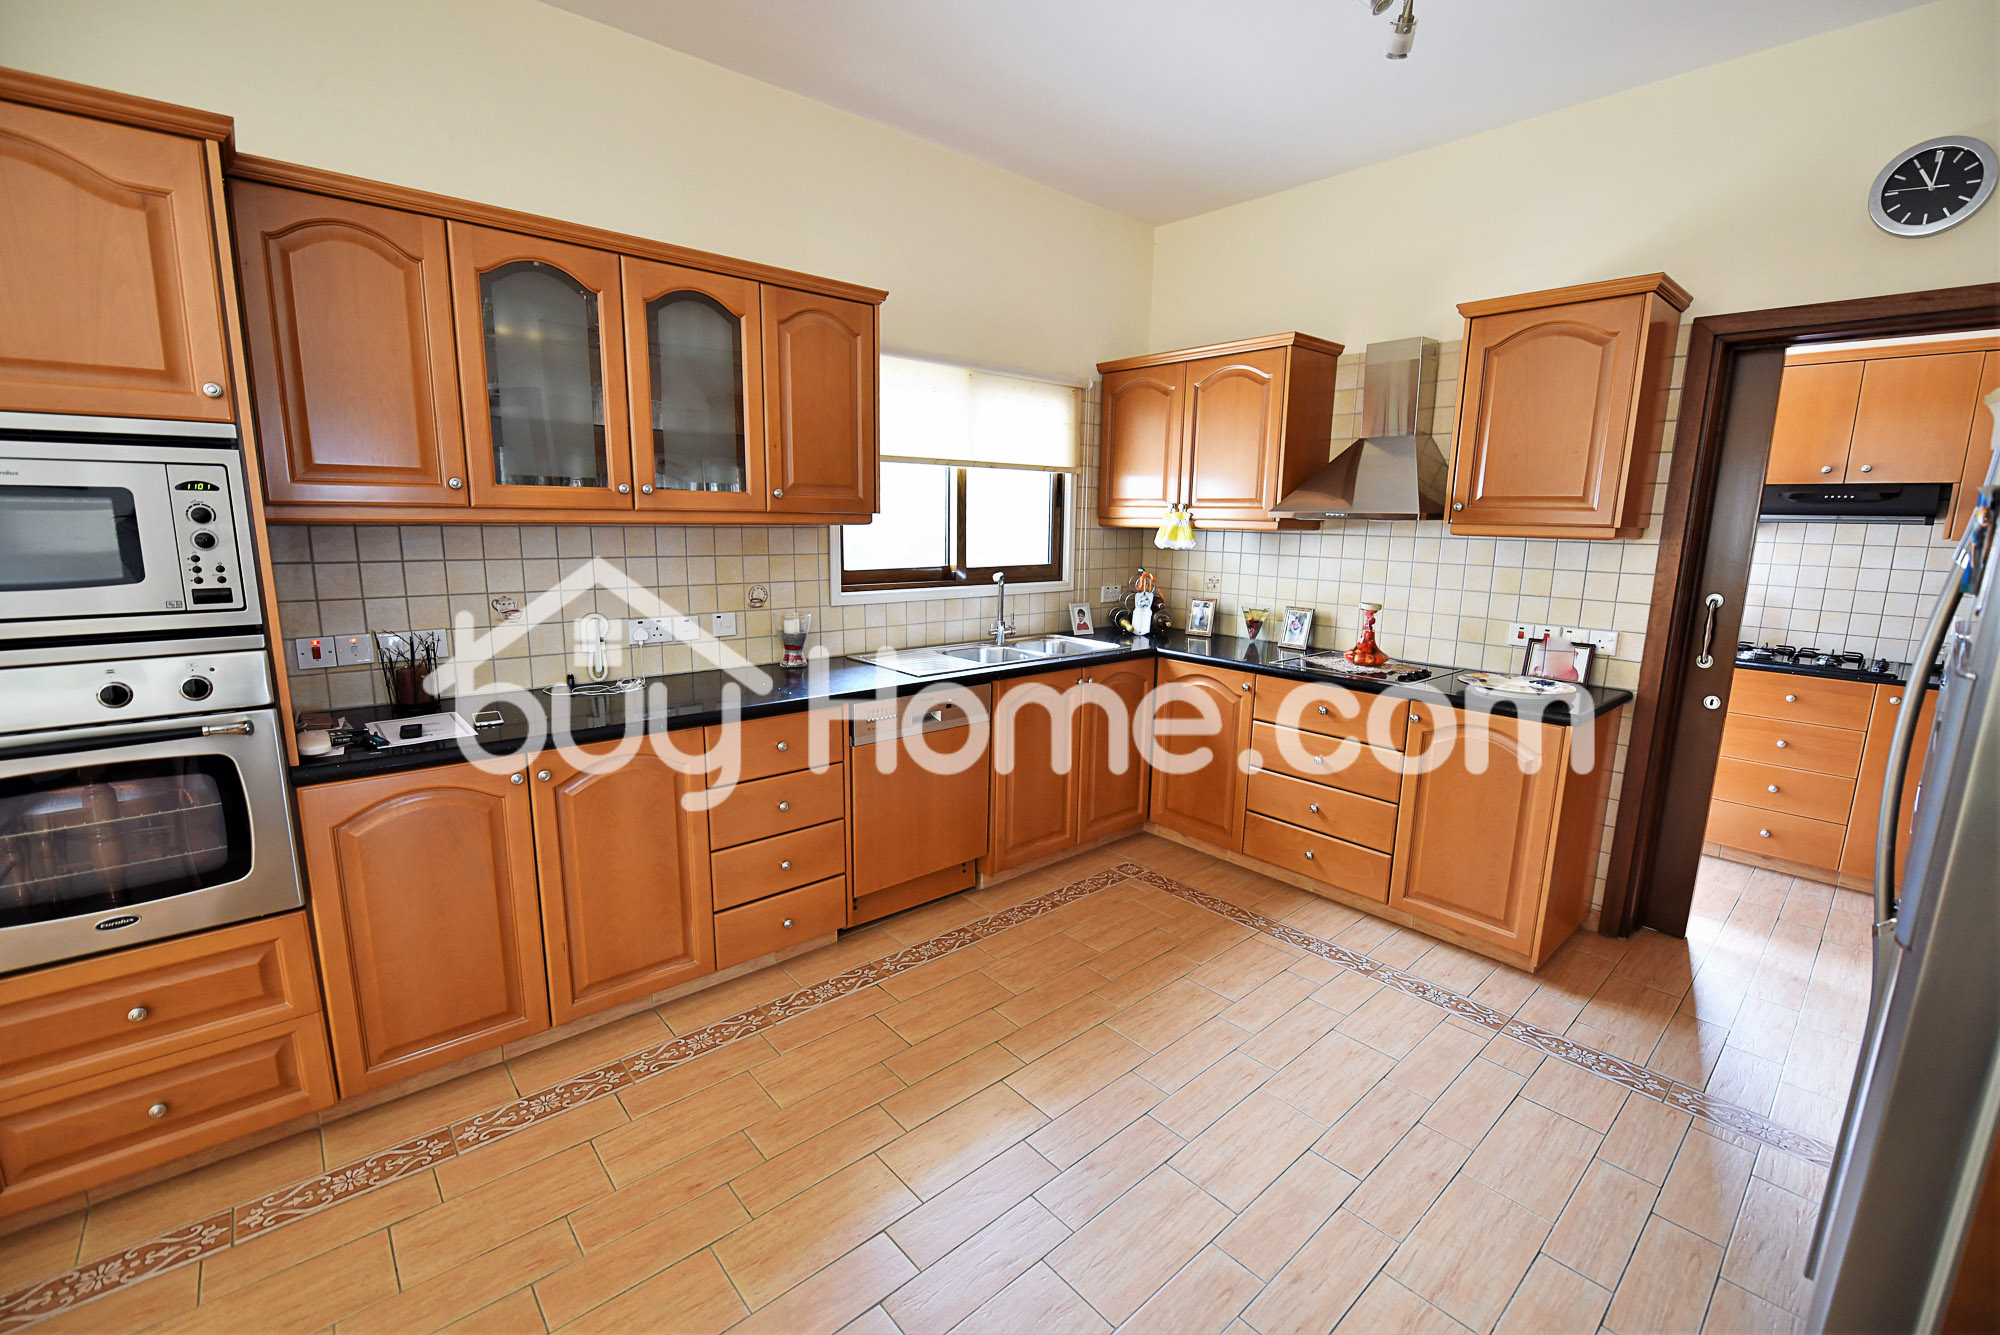 Lovely 4 Bedroom Detached House | BuyHome